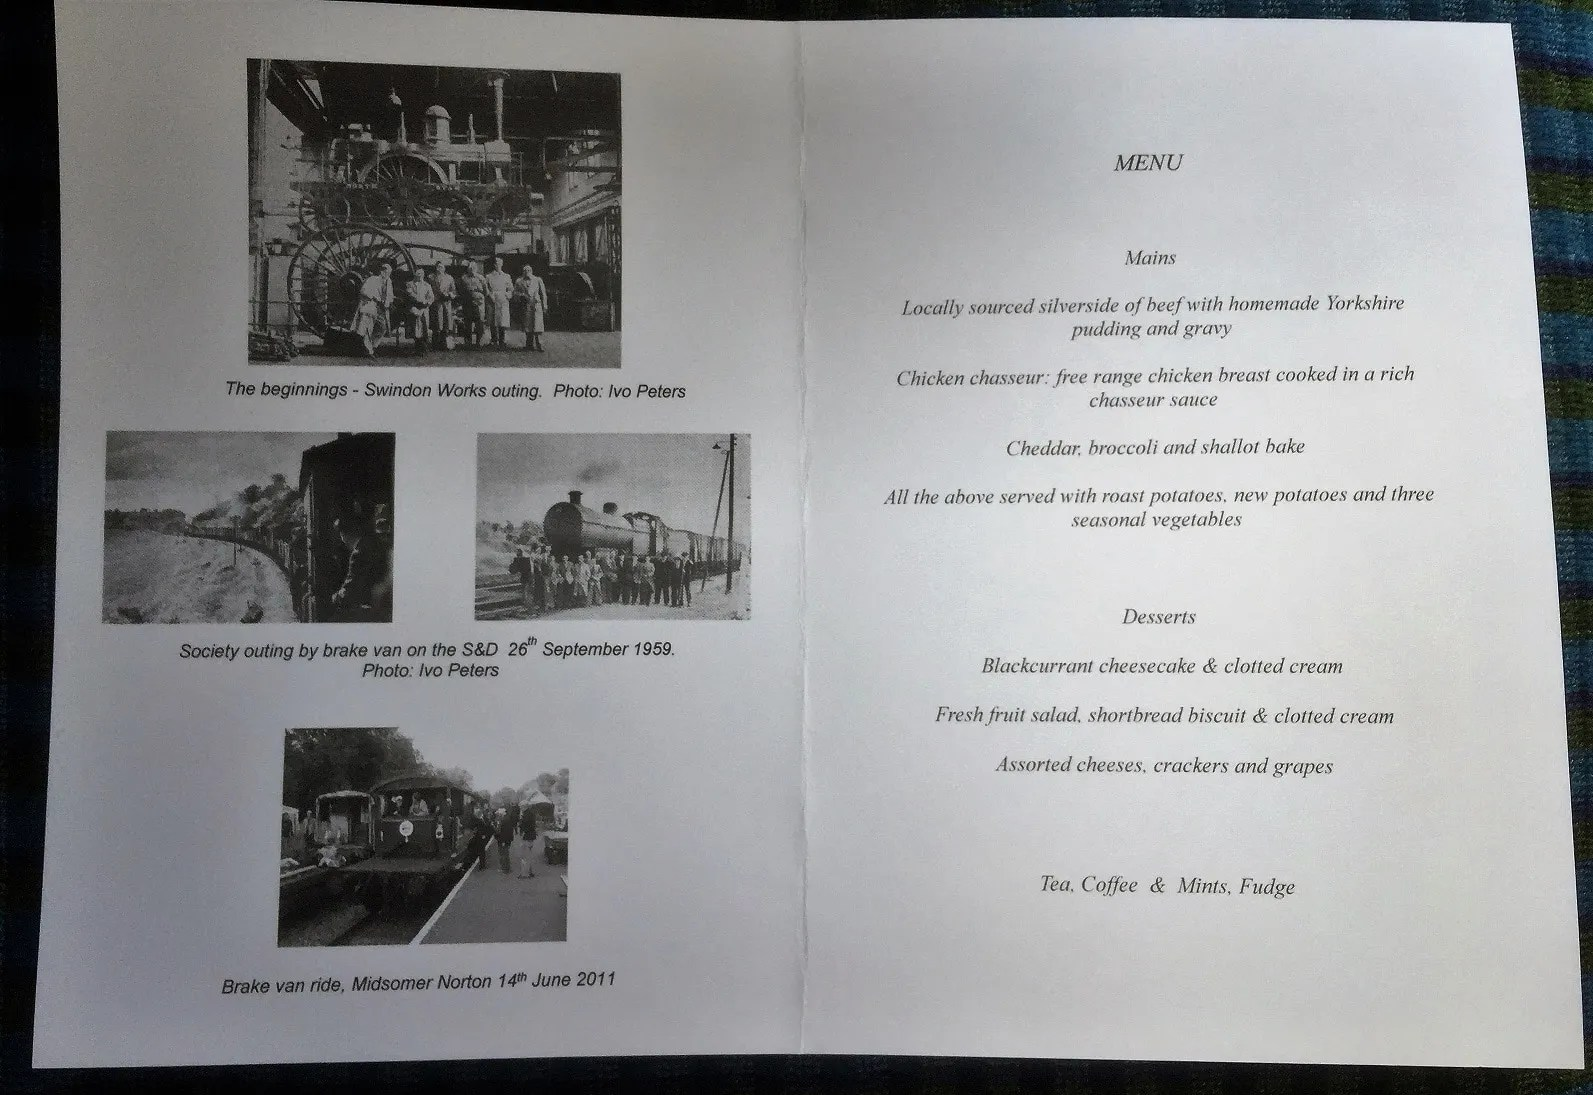 Bath Railway Society Jubilee Dinner menu